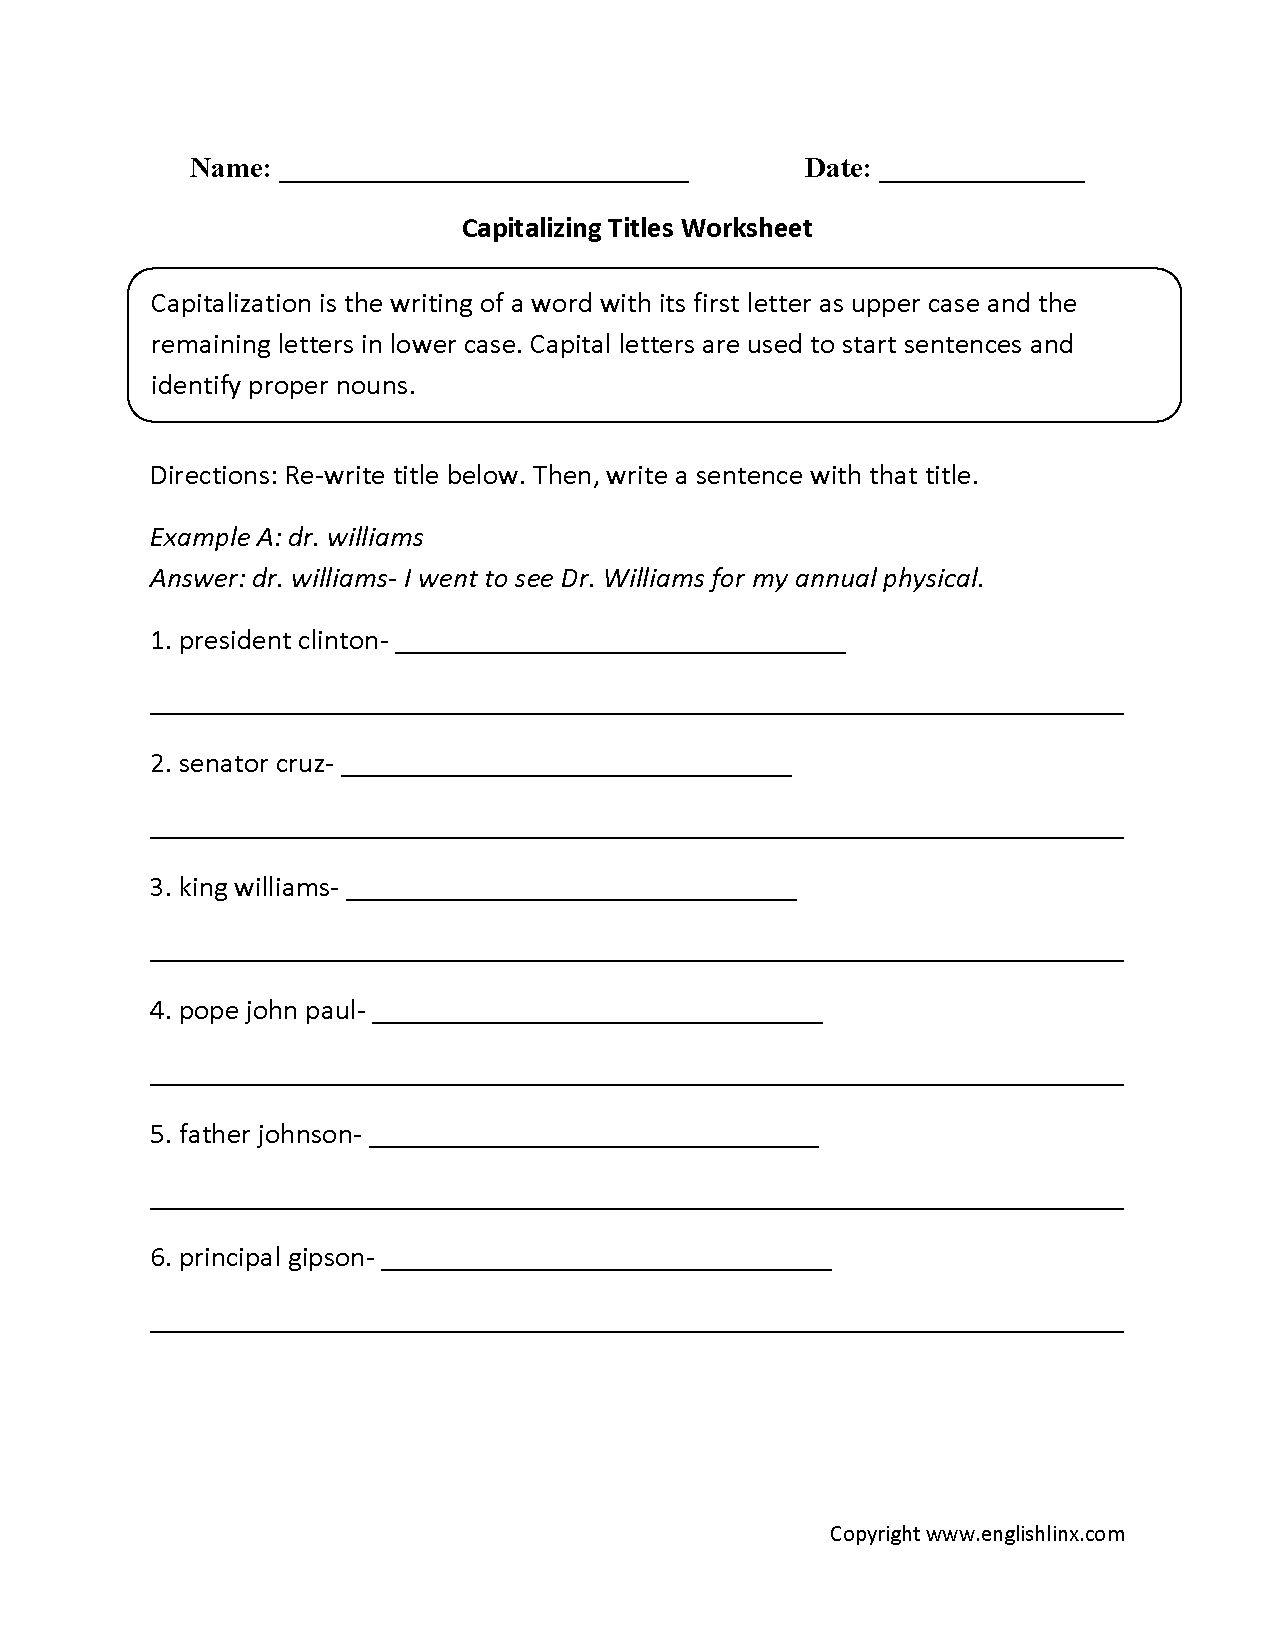 Worksheets Capitalization Worksheets Pdf capitalizing titles worksheet school grammar 3 pinterest this capitalization directs the student to capitalize tiles of proper nouns and specific jobs all must b